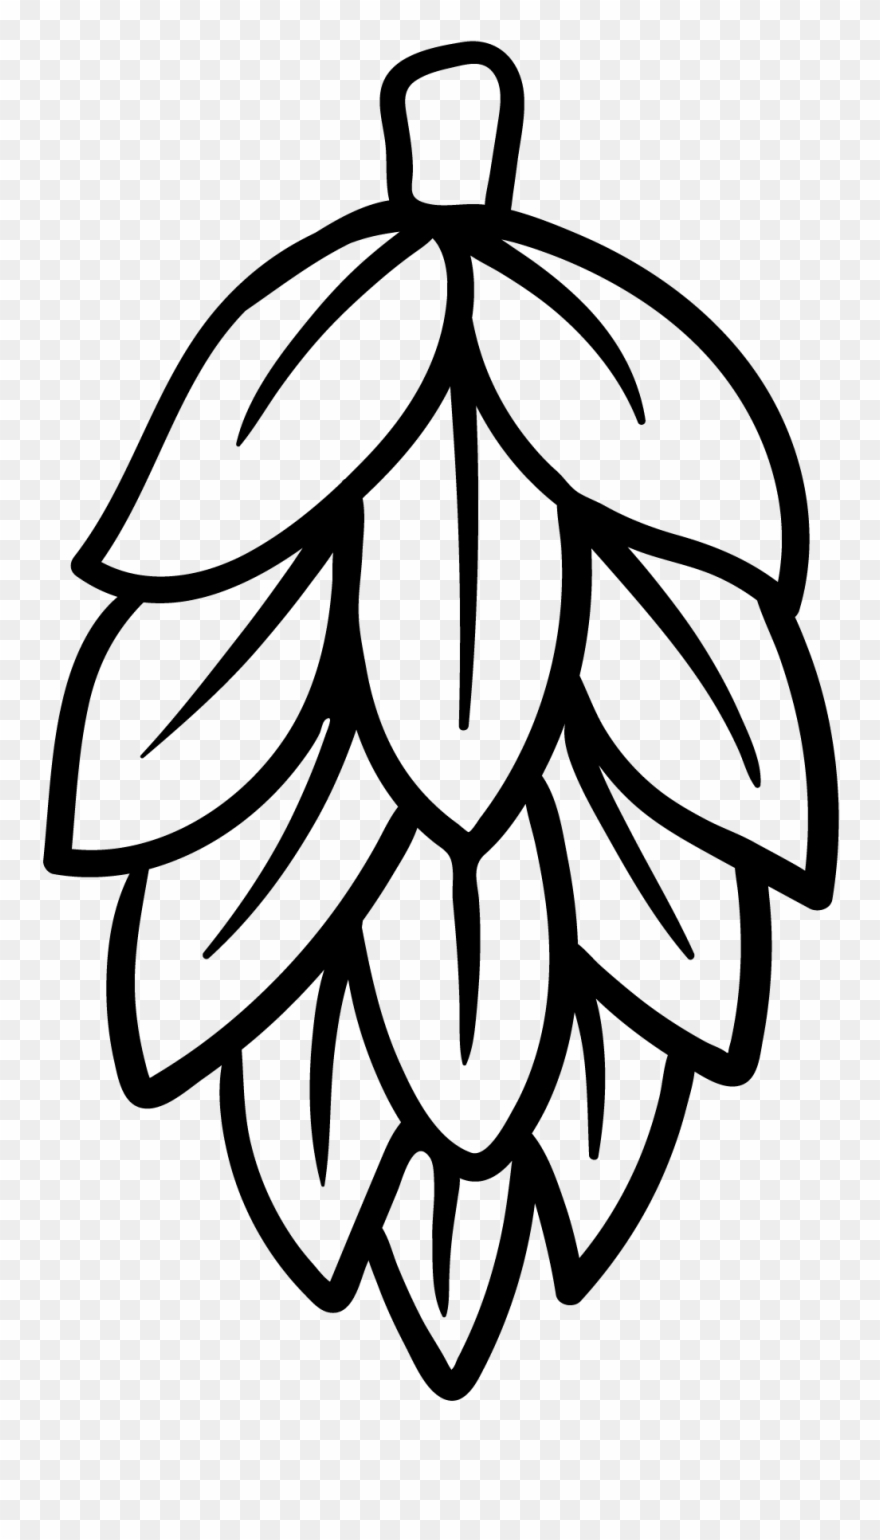 png black and white Hops clipart. Black and white beer